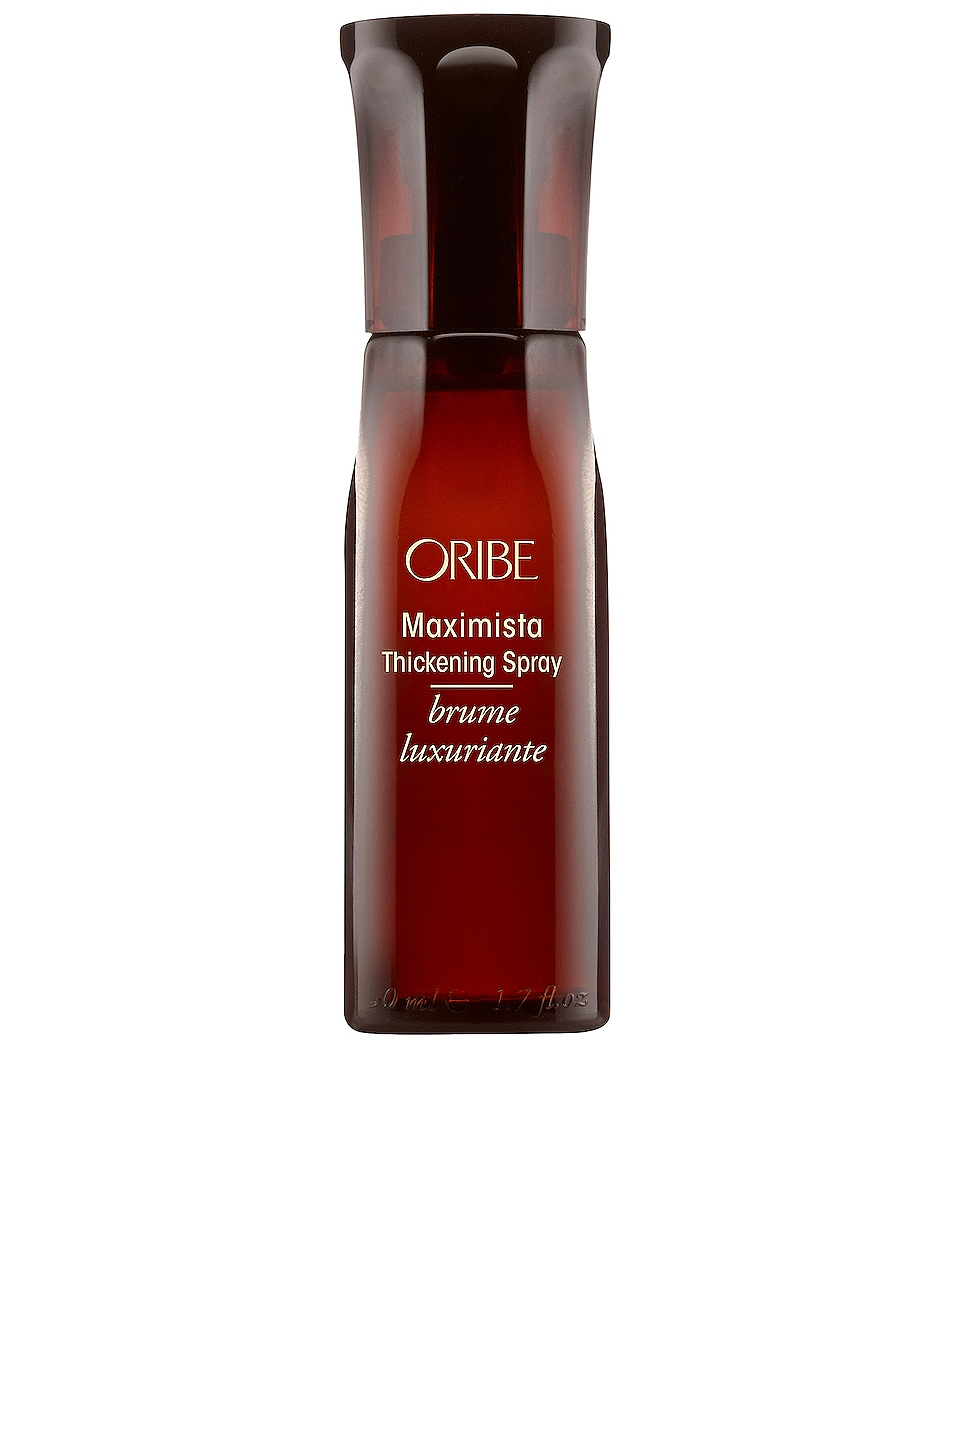 Oribe Travel Maximista Thickening Spray